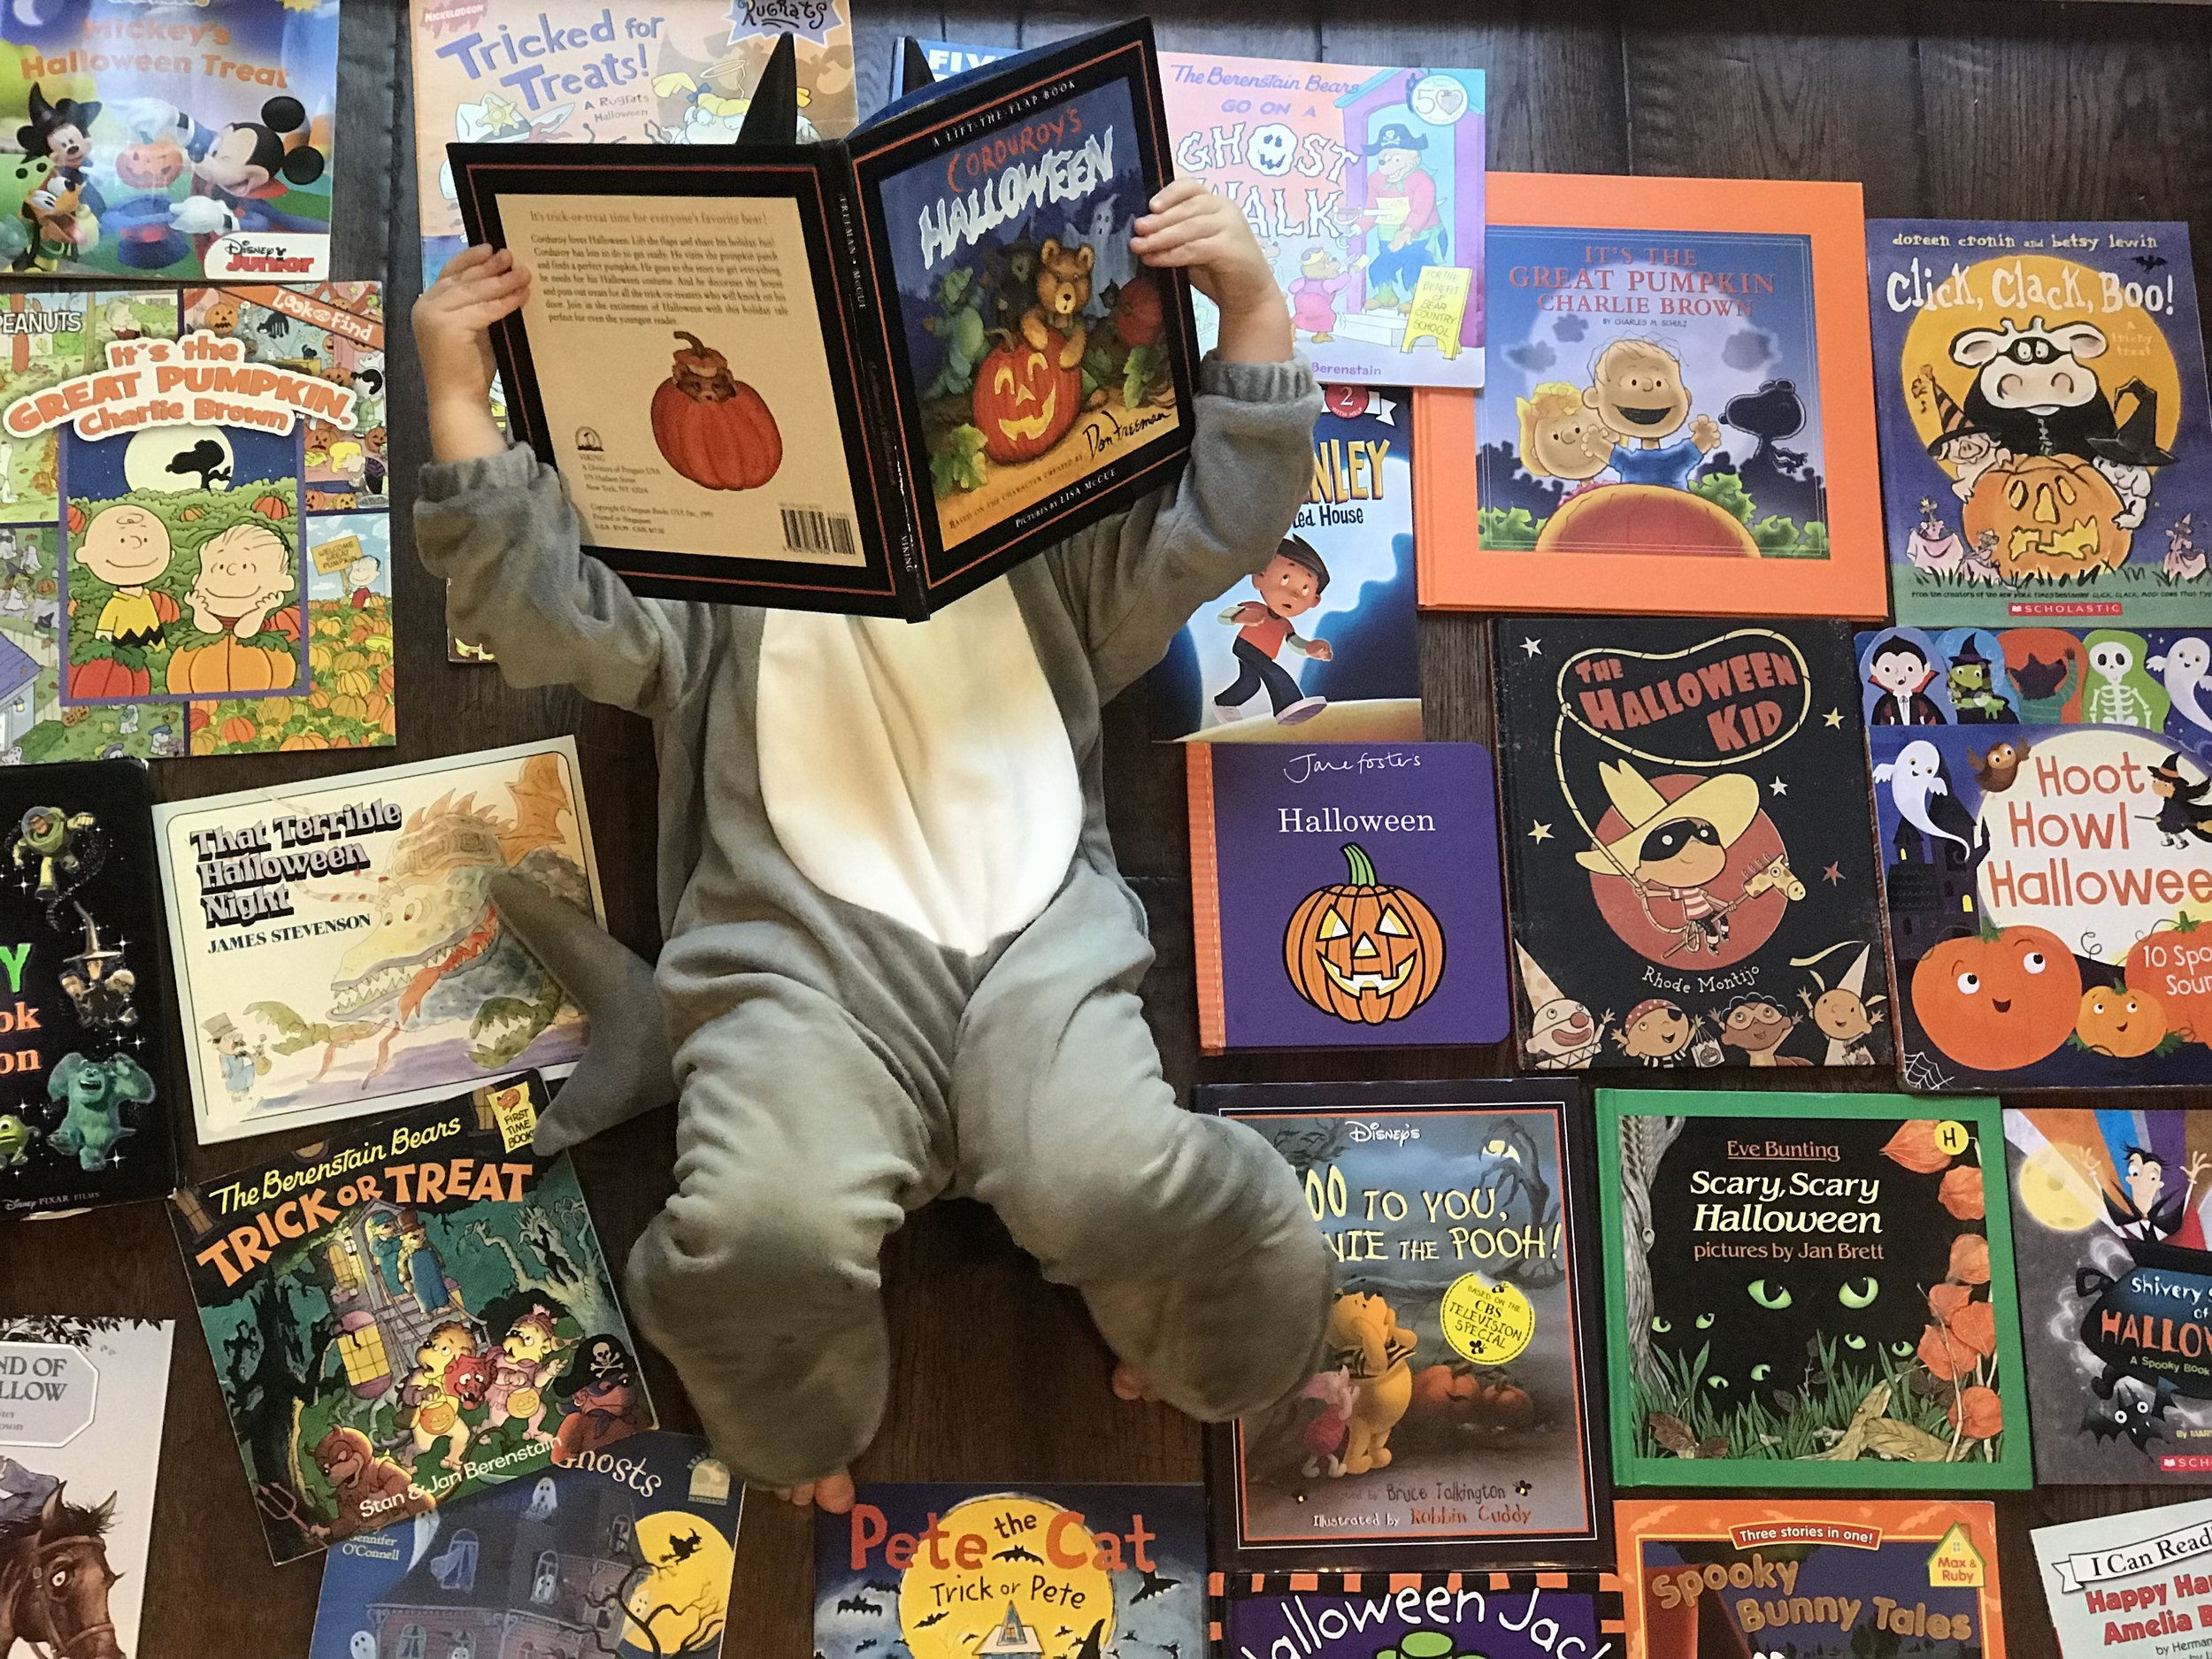 the best halloween picture books — dad suggests | fatherly thoughts